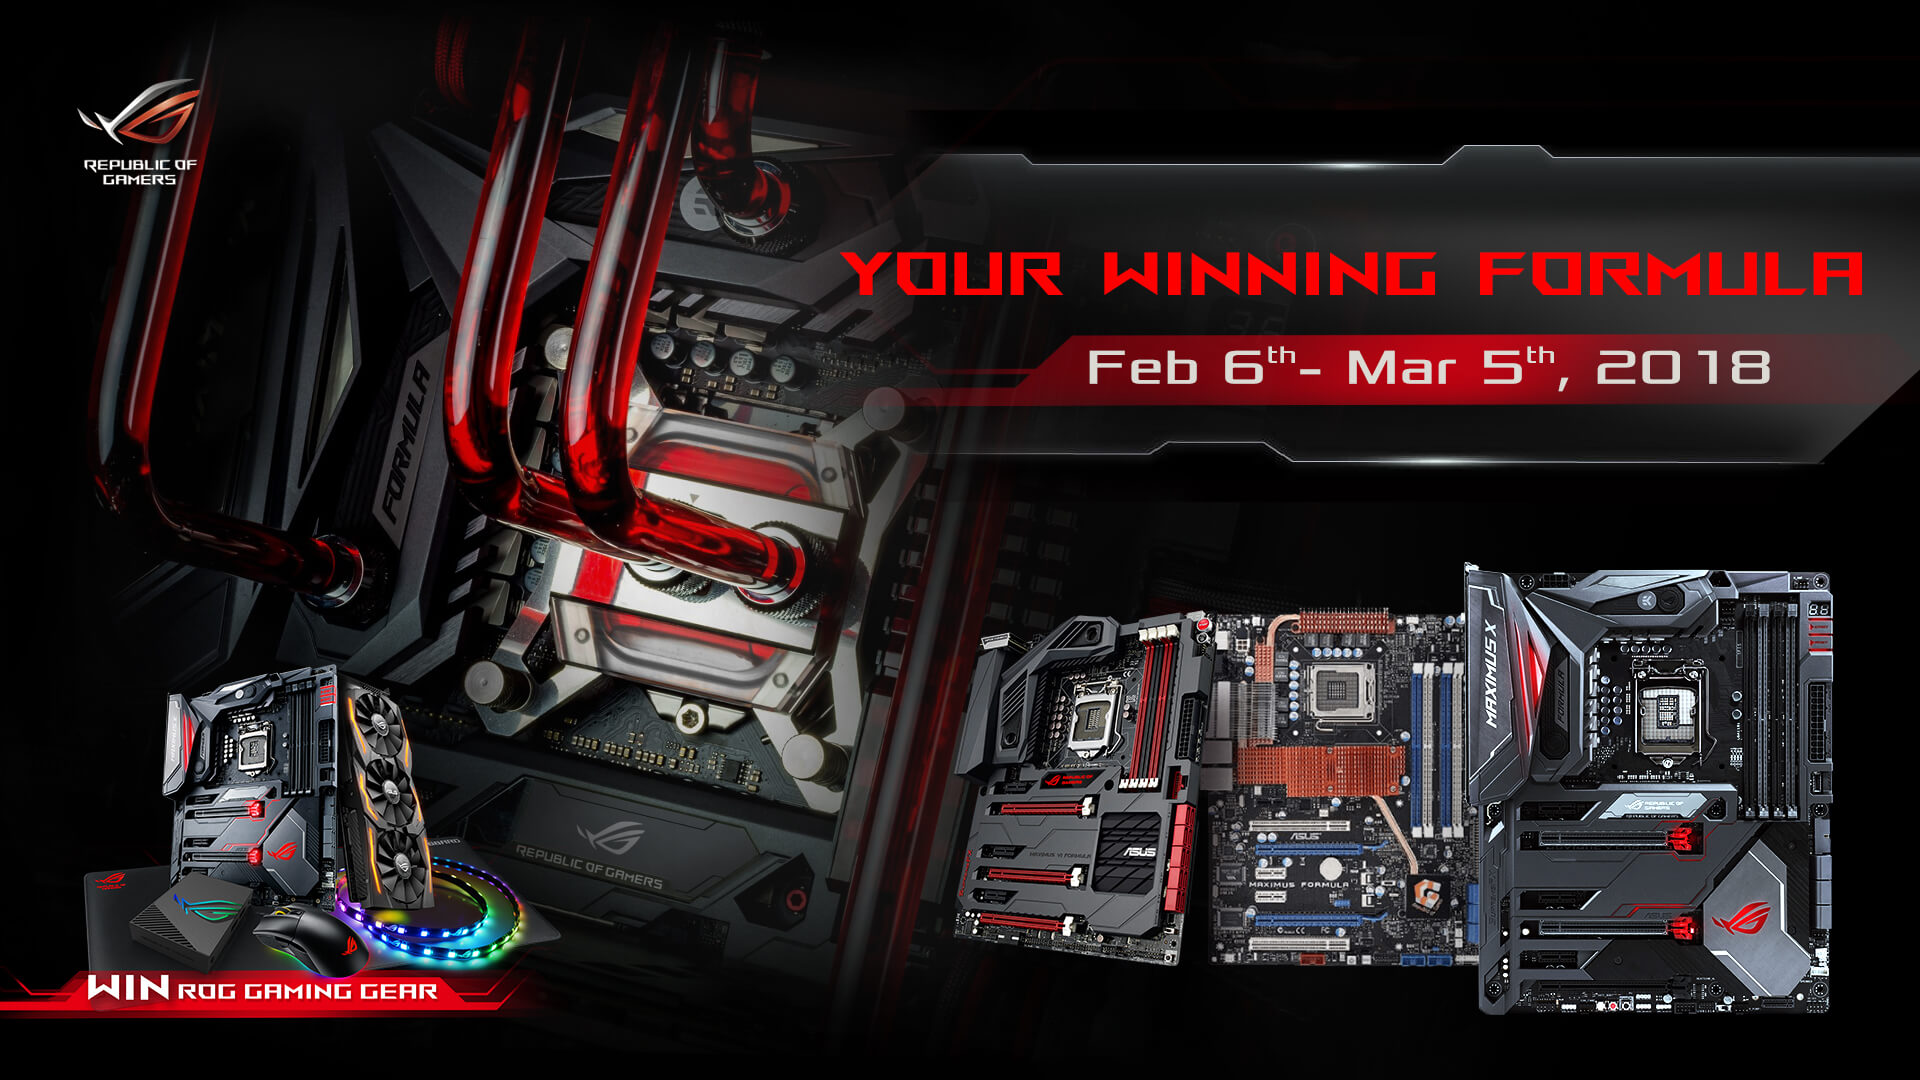 """ROG Maximus Formula, Showcase Your Powerful Rigs in ASUS ROG's """"Your Winning Formula"""" Contest!, Gadget Pilipinas, Gadget Pilipinas"""